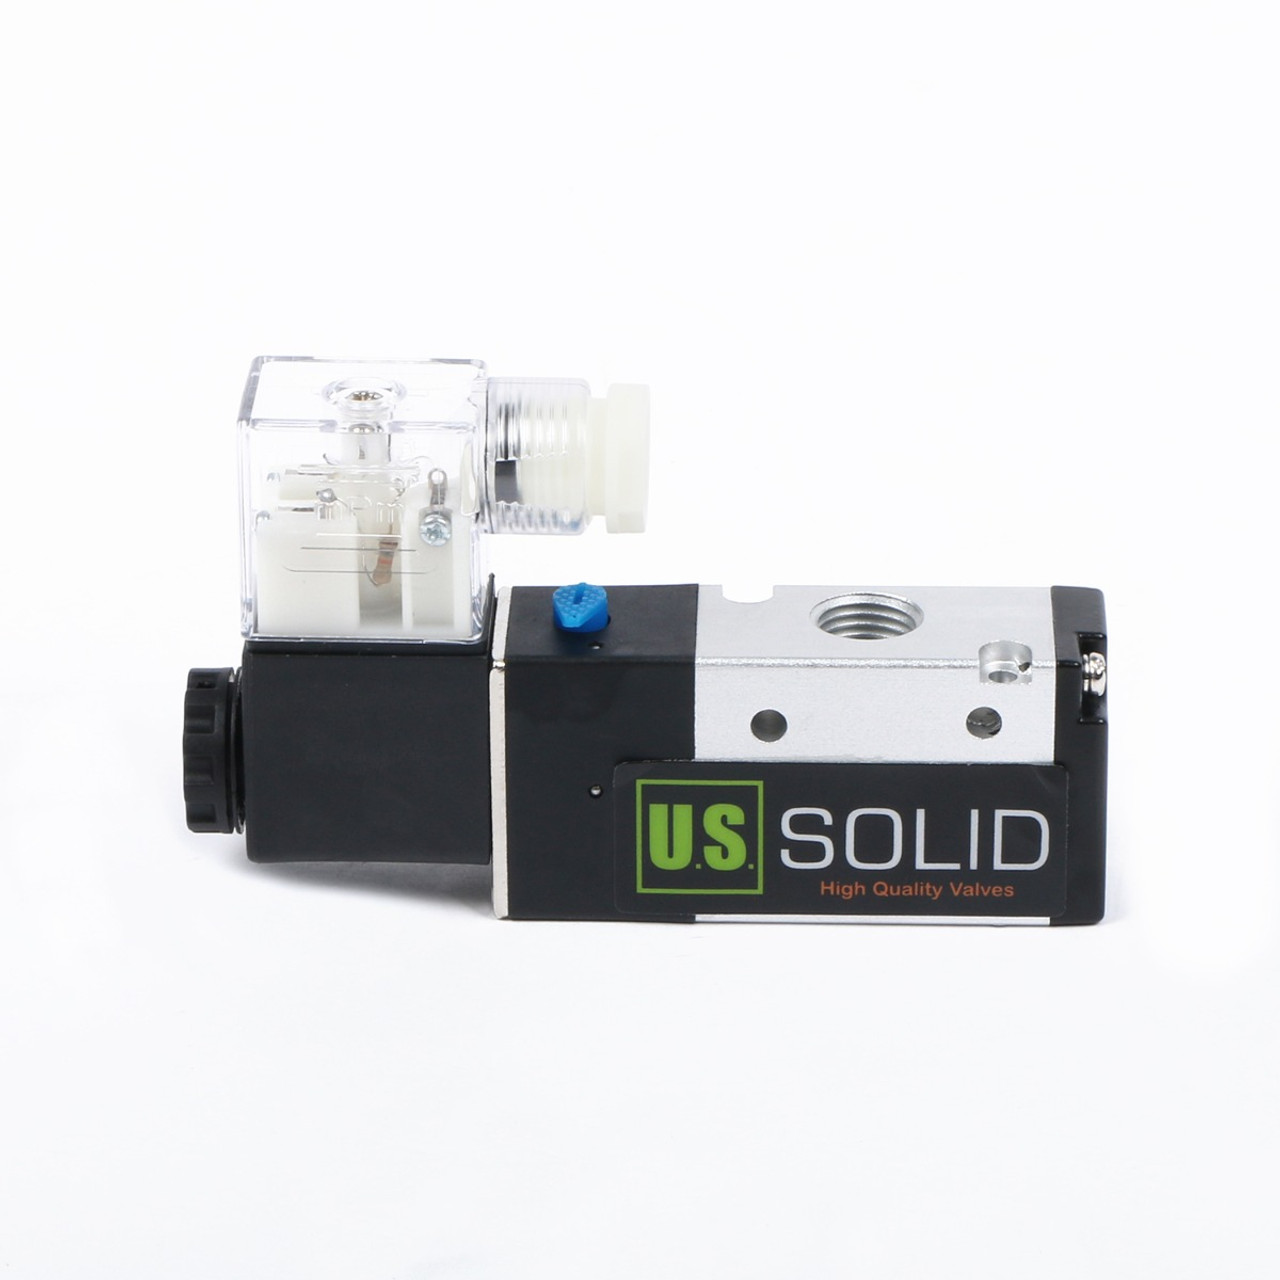 "USSOLID 1/4"" 3 Way 2 Position Pneumatic Electric Solenoid Valve DC 12 V"